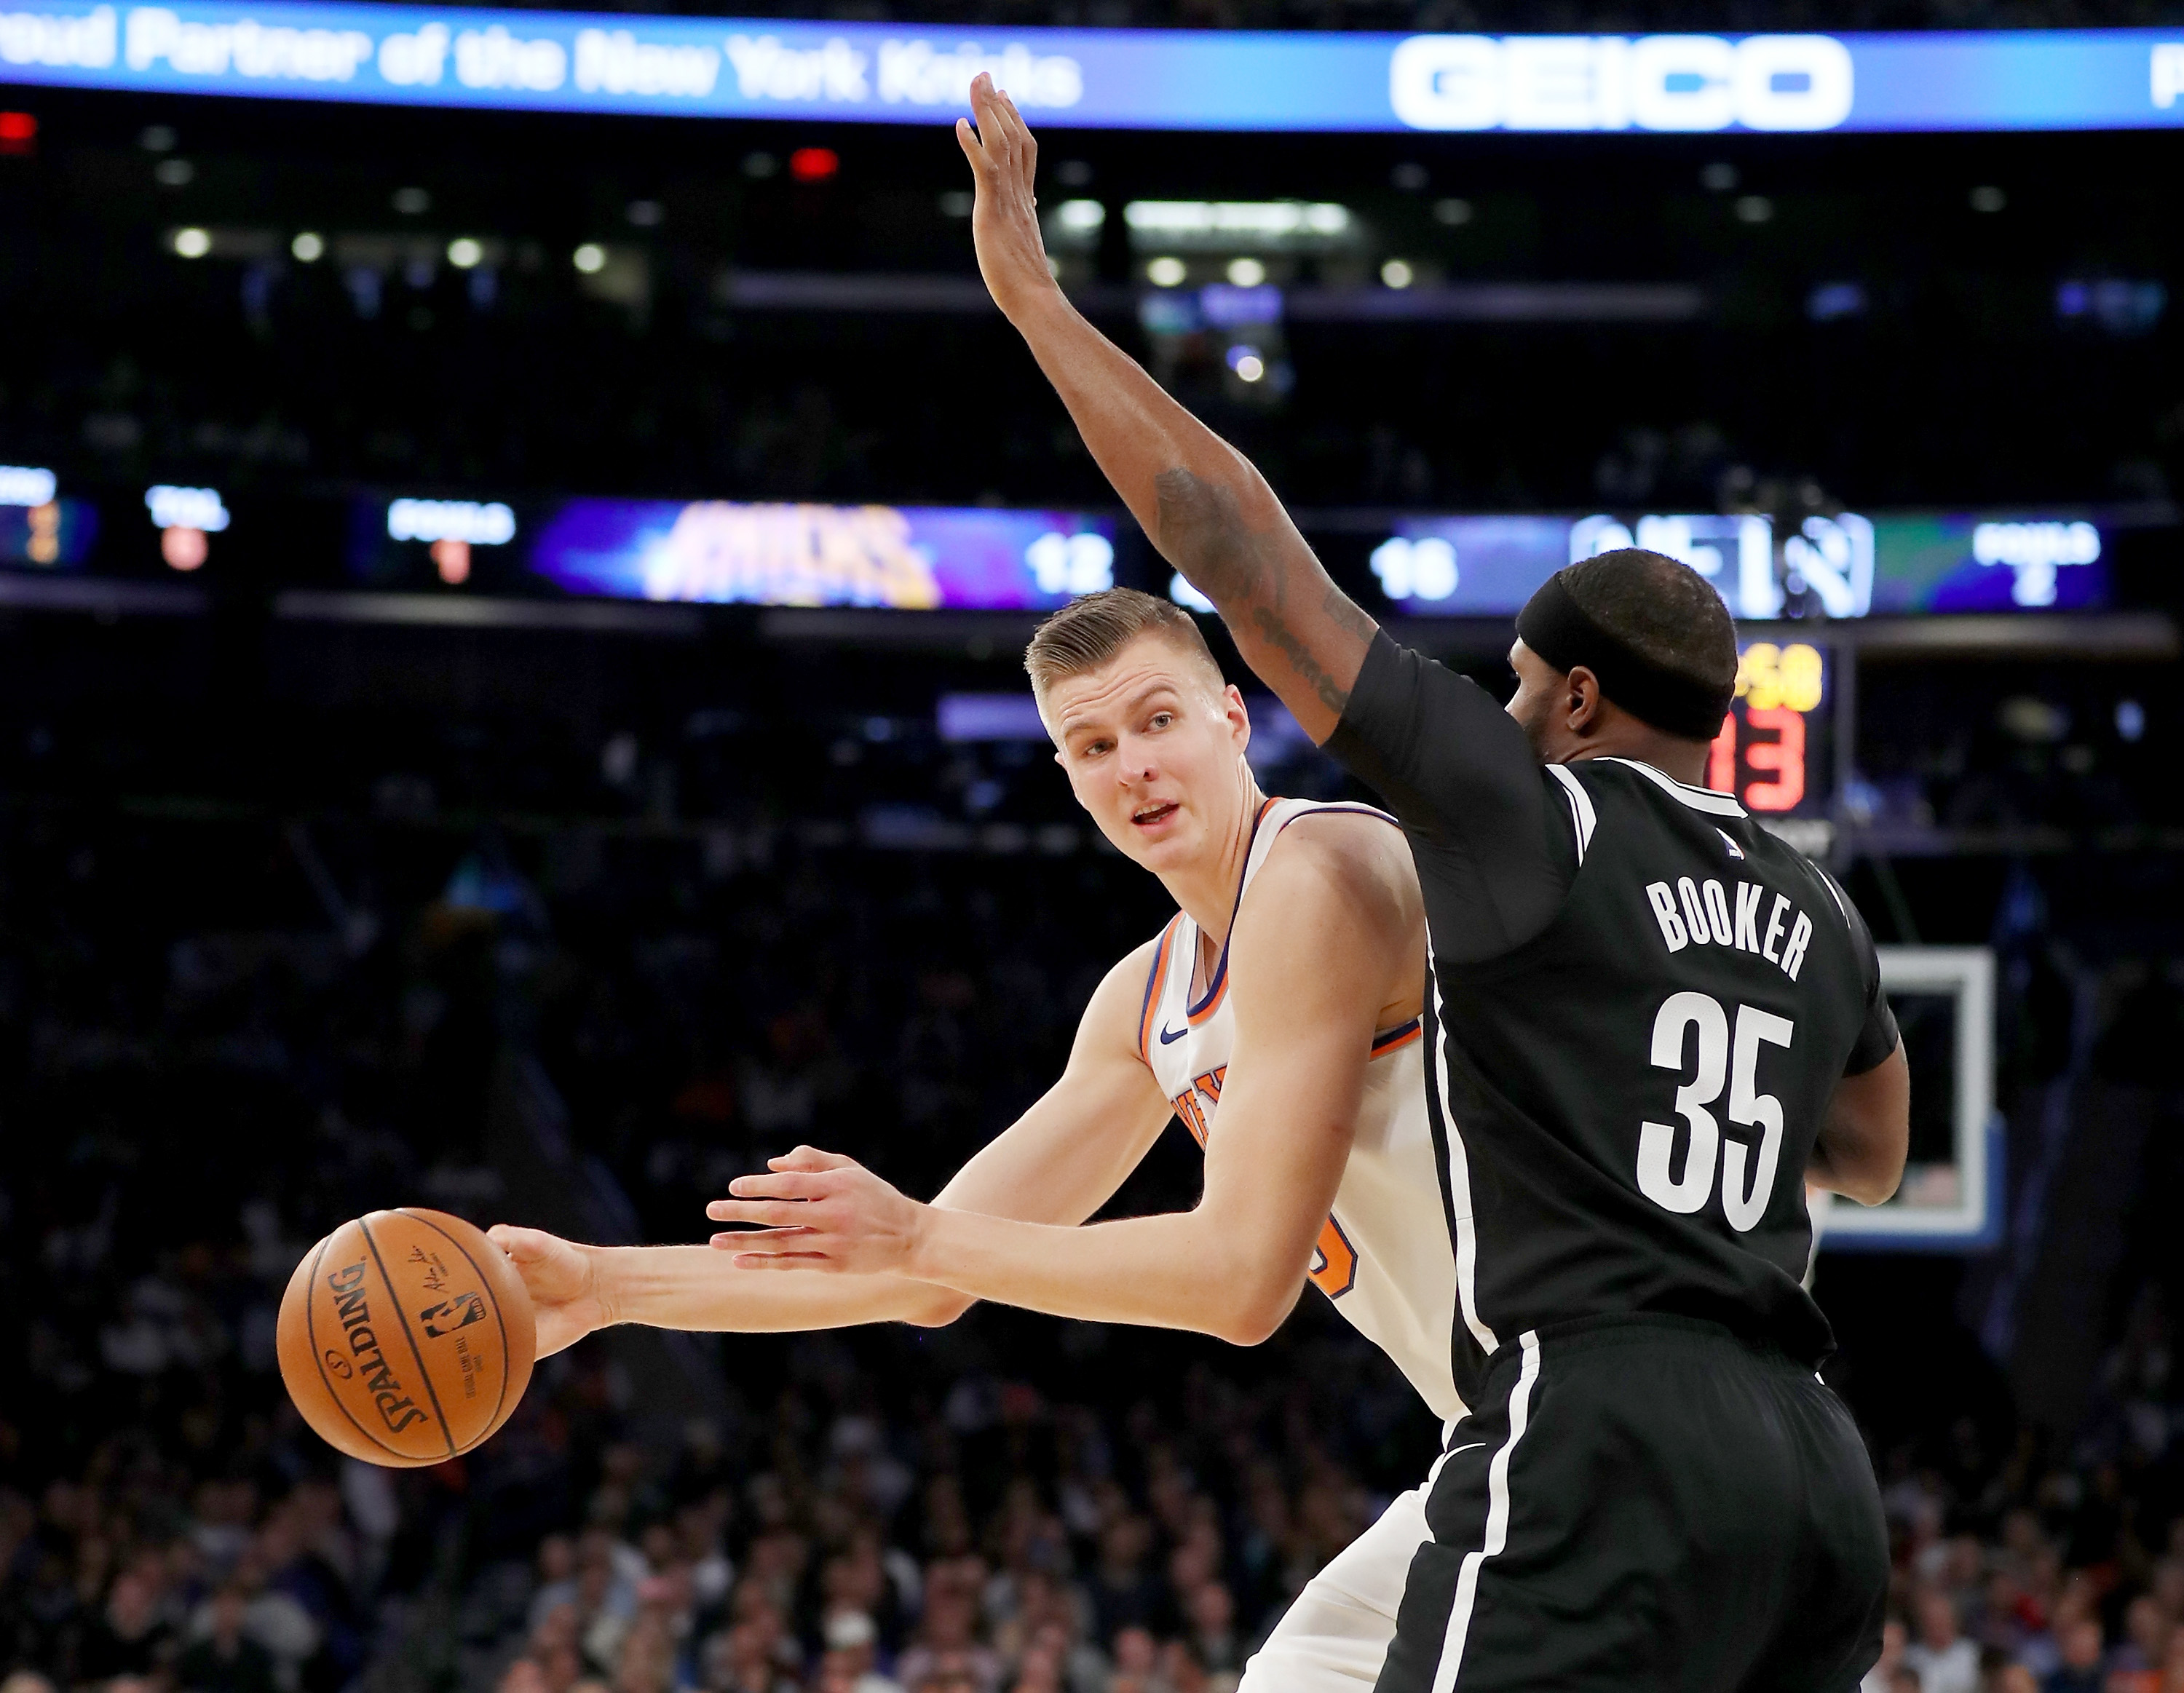 Is lack of durability Kristaps Porzingis' biggest issue?